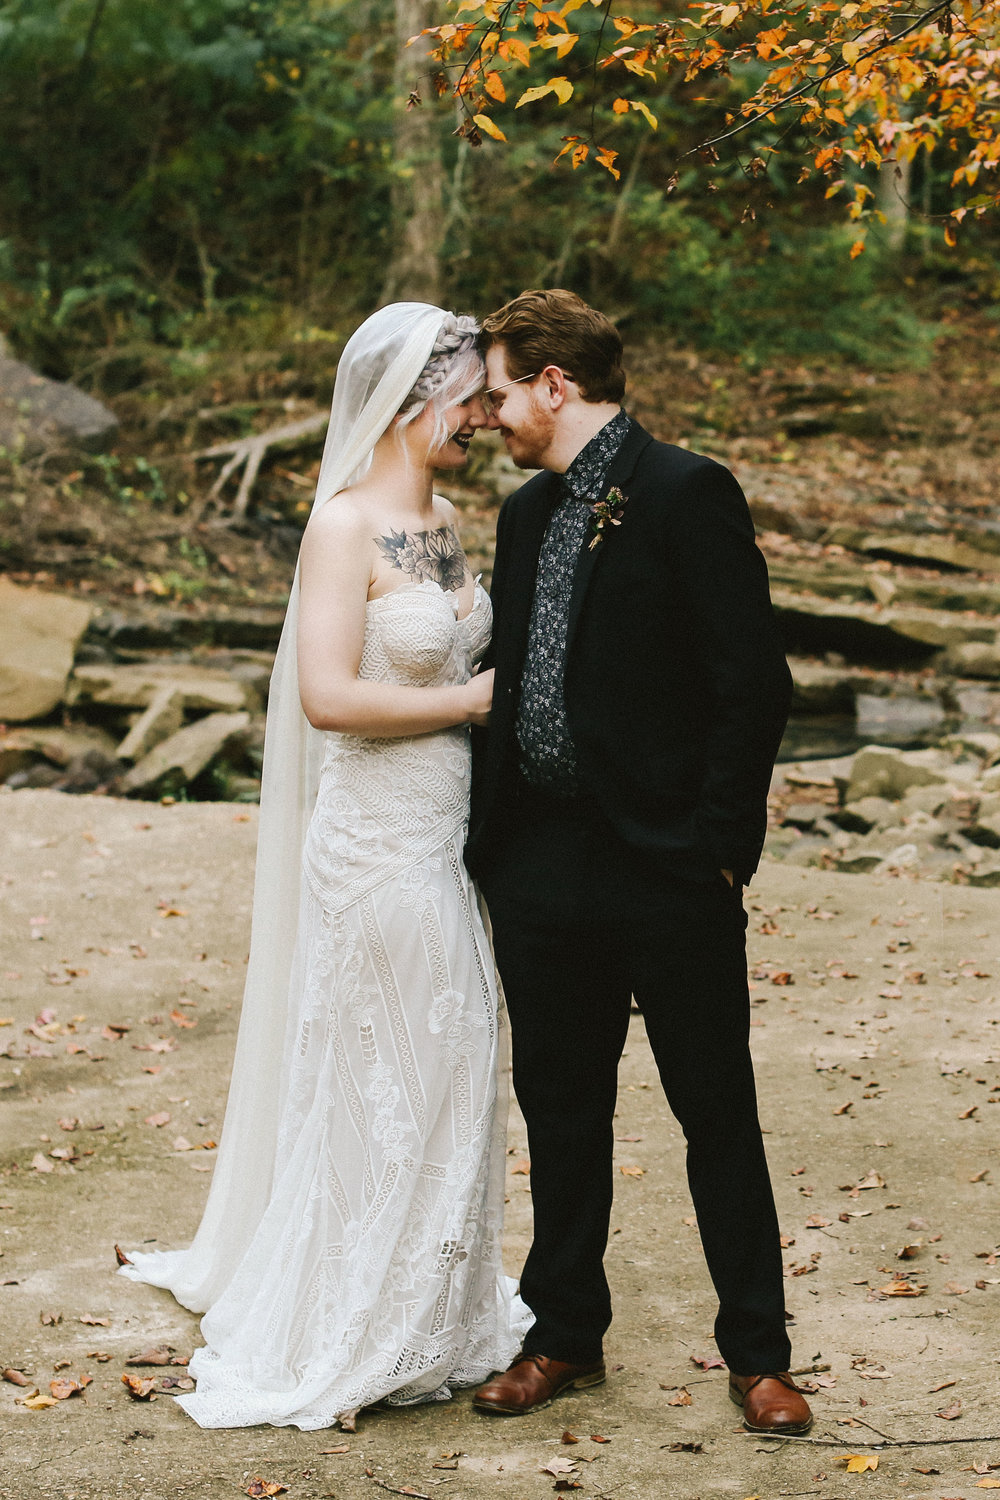 Creekside Fall Wedding Shoot - Autumn Wedding Inspiration and Ideas